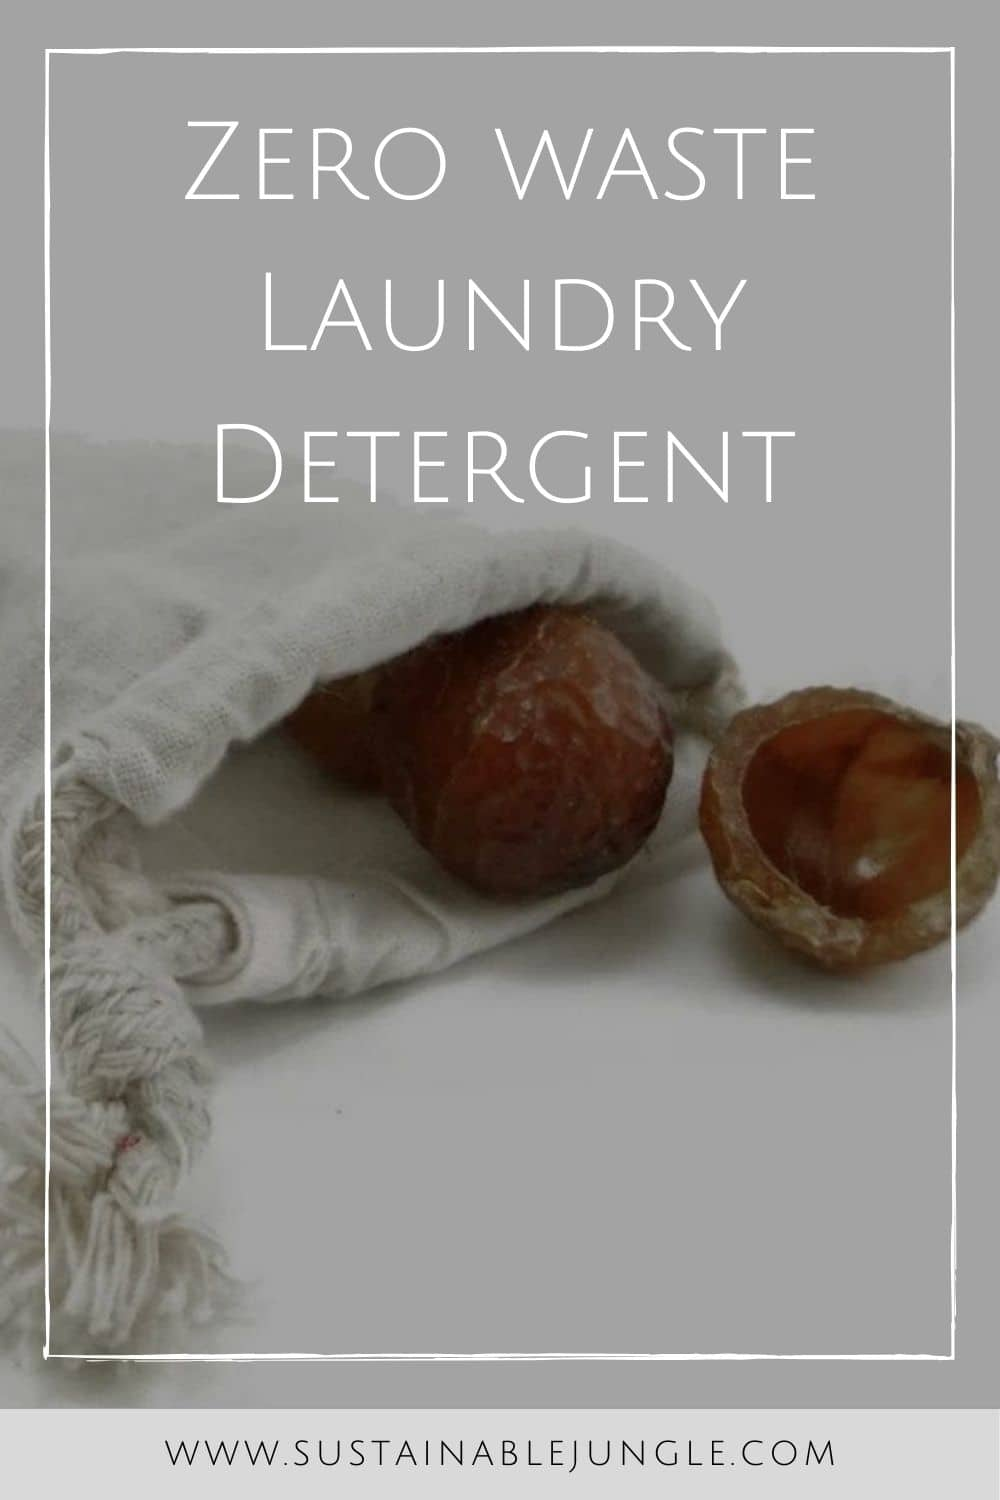 Zero Waste Laundry Detergent Image by Eco Nuts #zerowastelaundrydetegent #zerowastelaundry #sustainablejungle